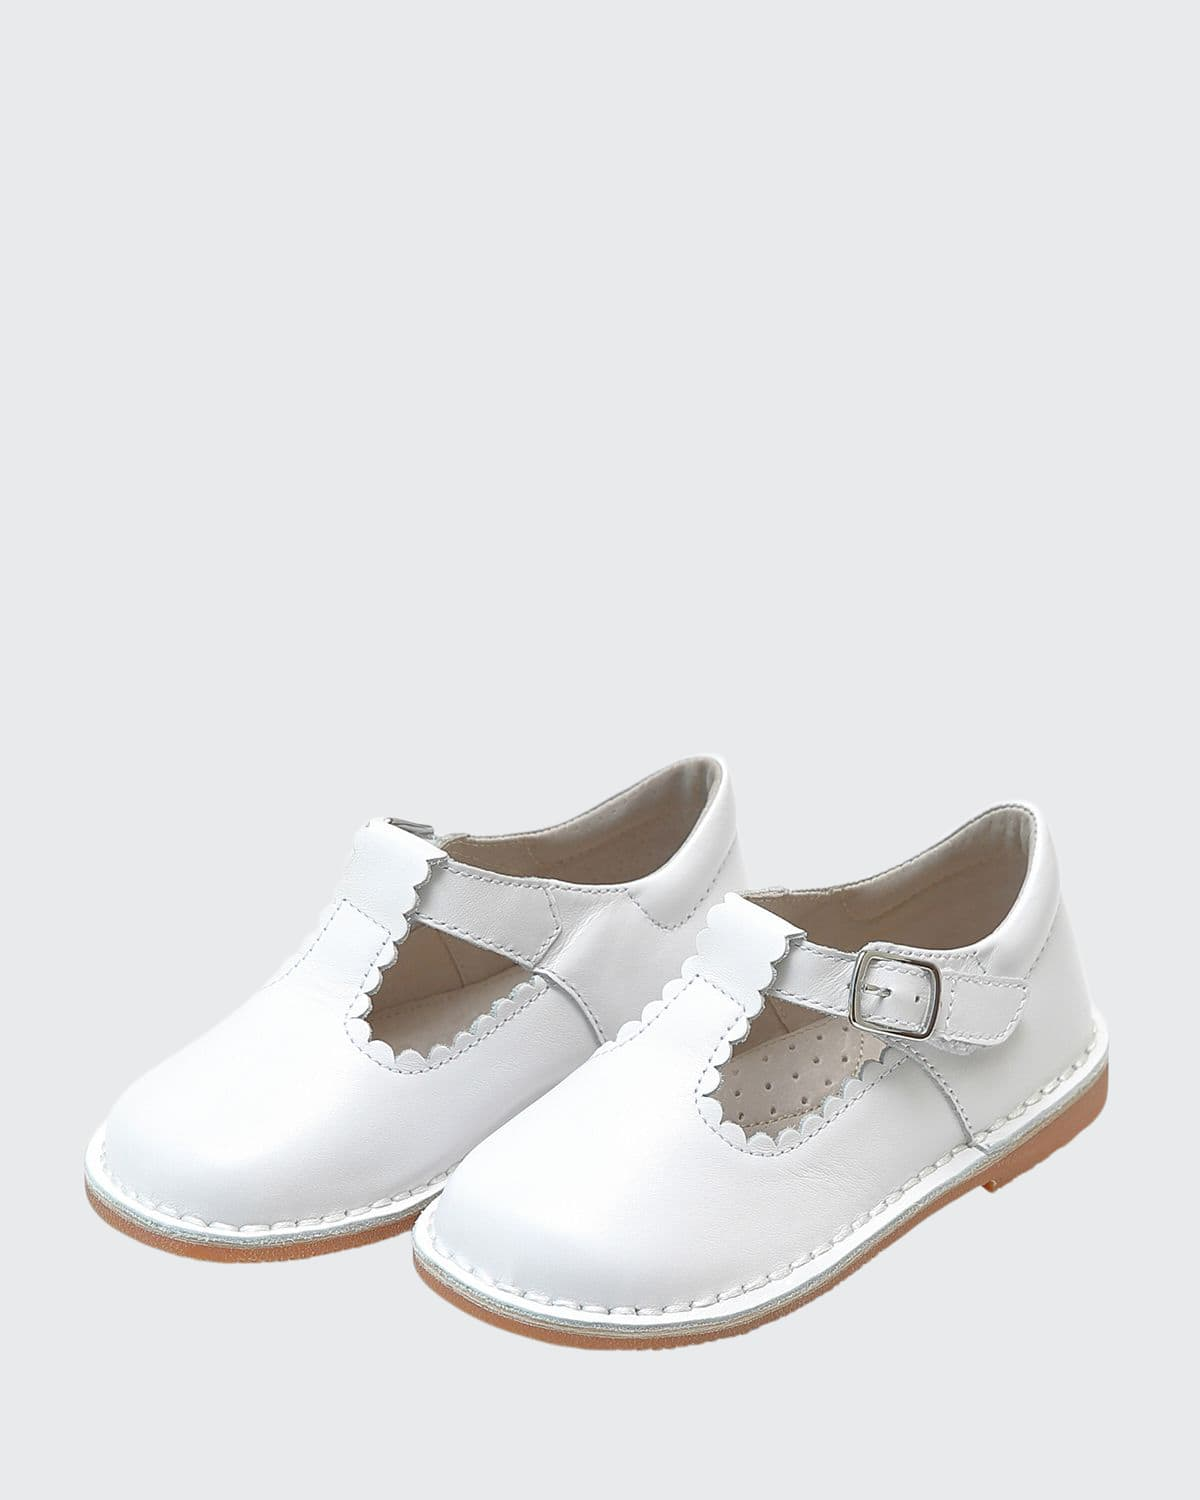 Selina Scalloped T-Strap Leather Mary Janes